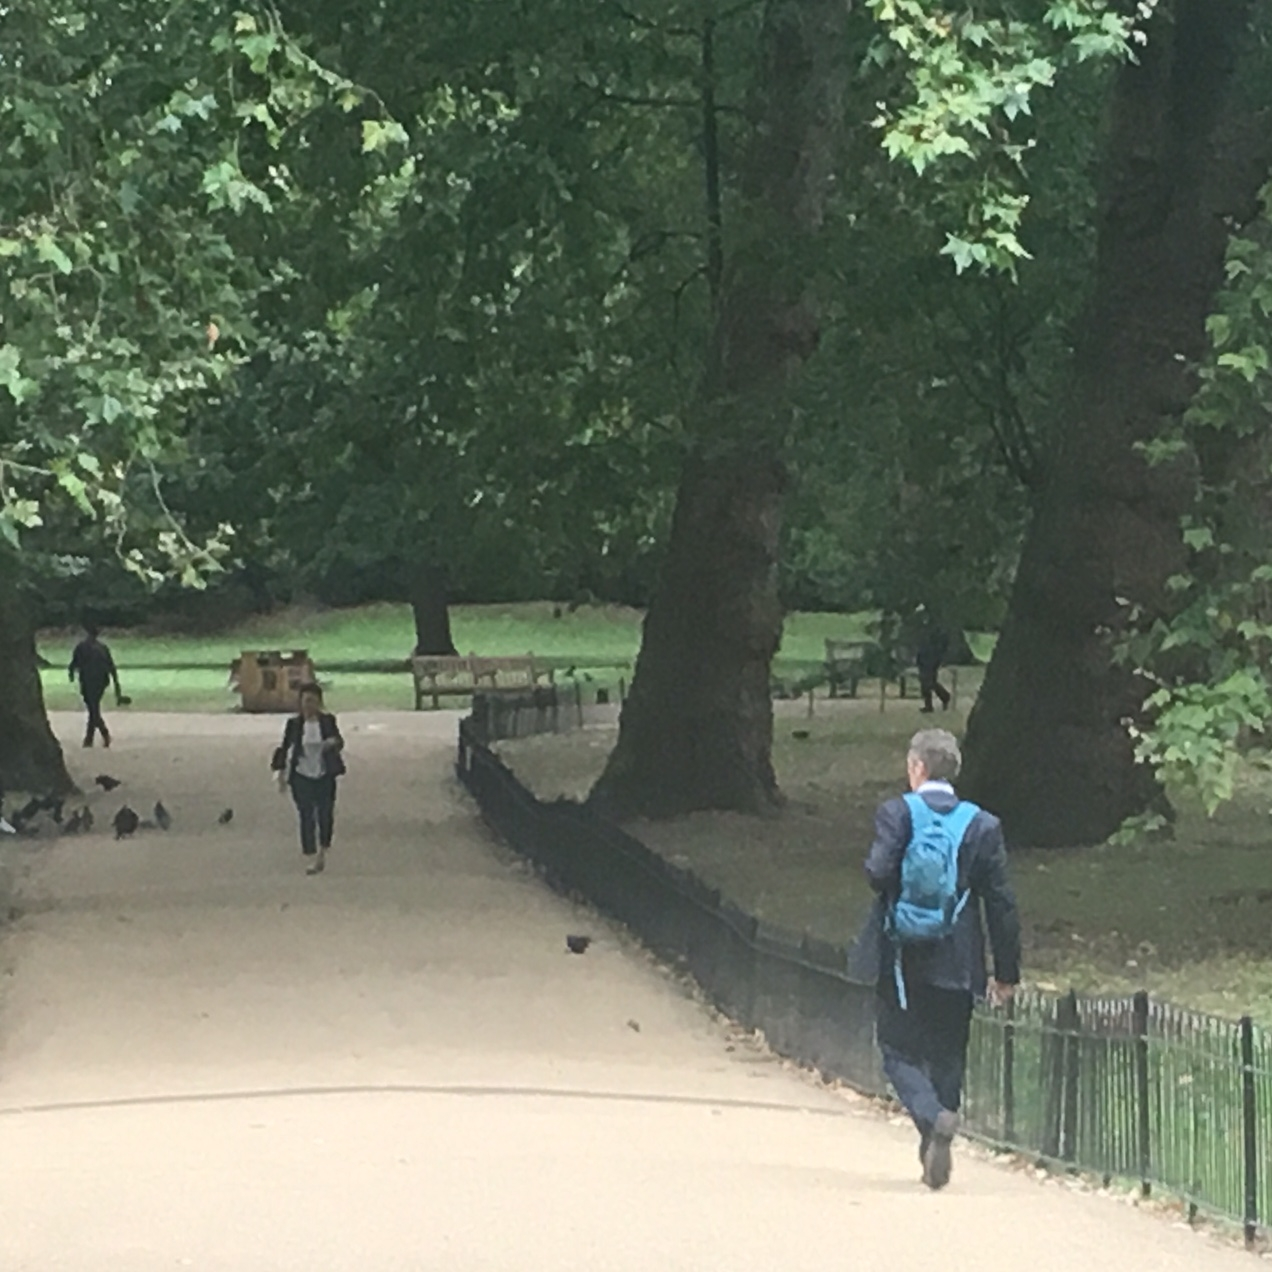 St James's Park, London by The Doubtful Traveller